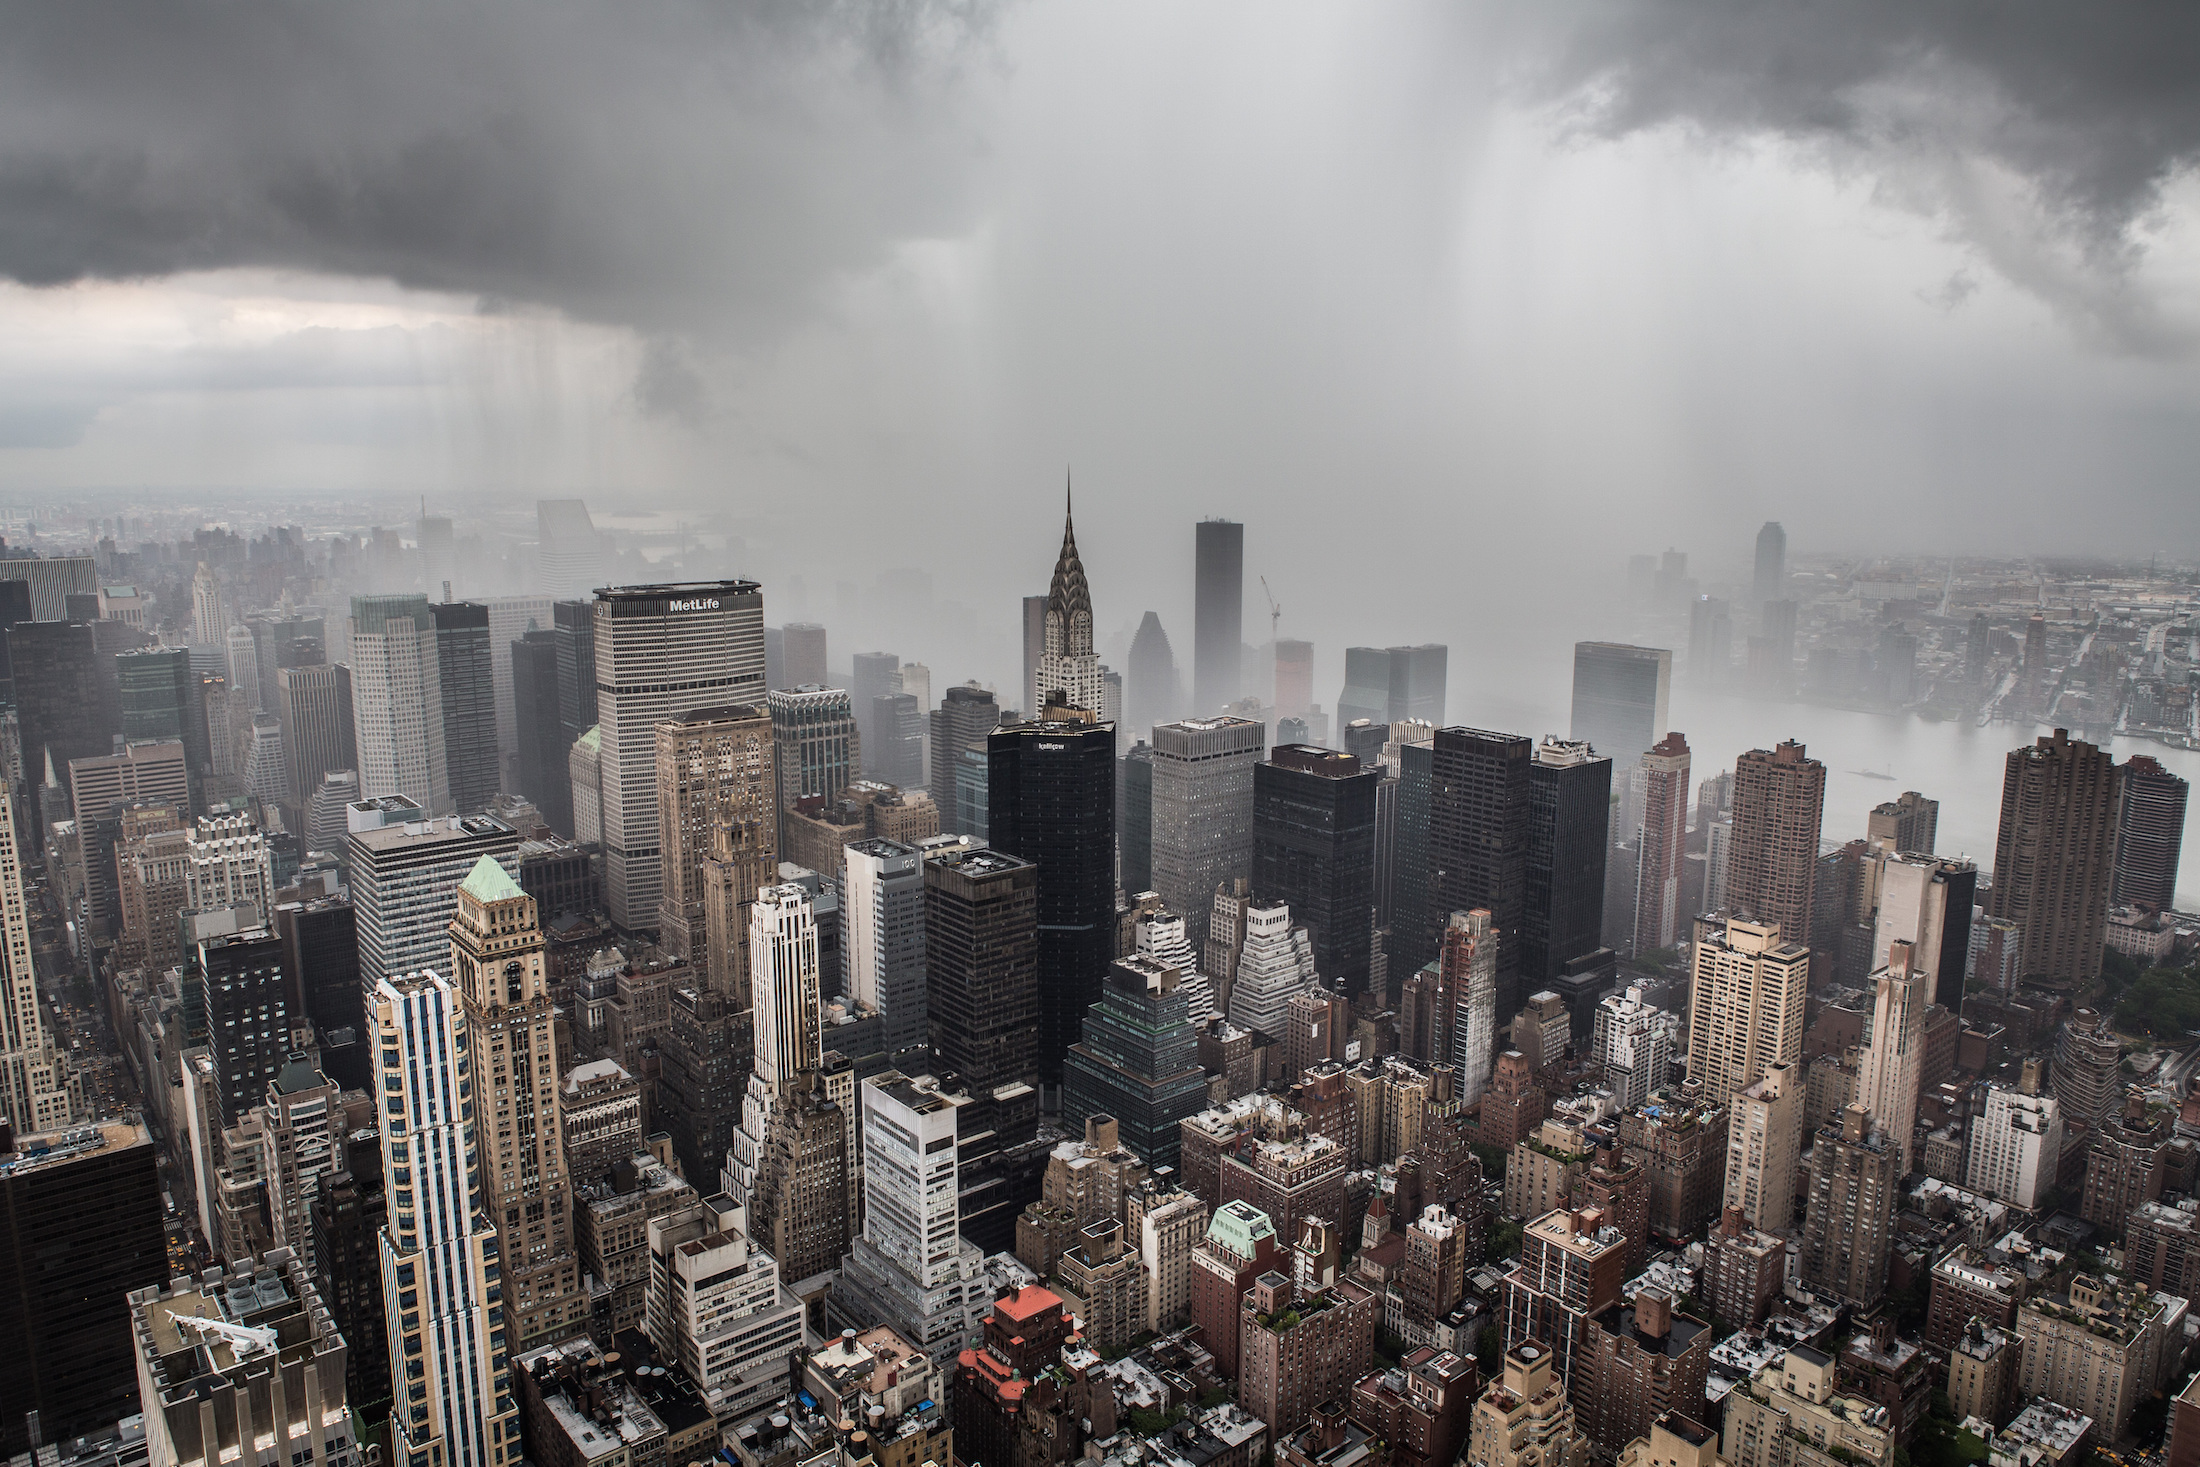 An aerial view of the buildings of New York City in midtown Manhattan. There are buildings of varying heights including the Chrysler Building. There are storm clouds and fog.